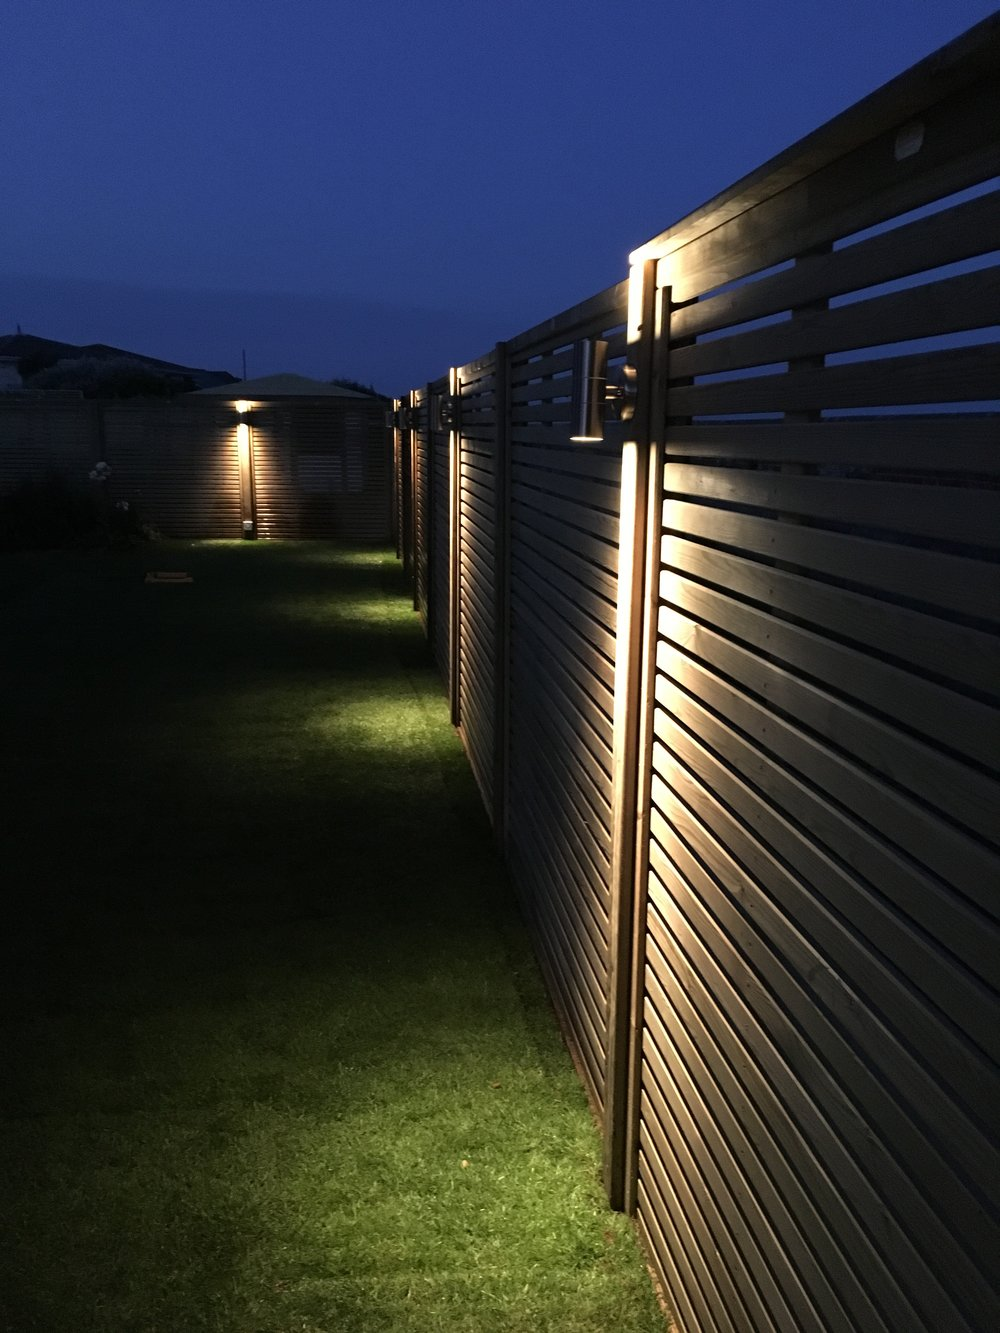 Jackson venetian panels with lighting installed on the posts